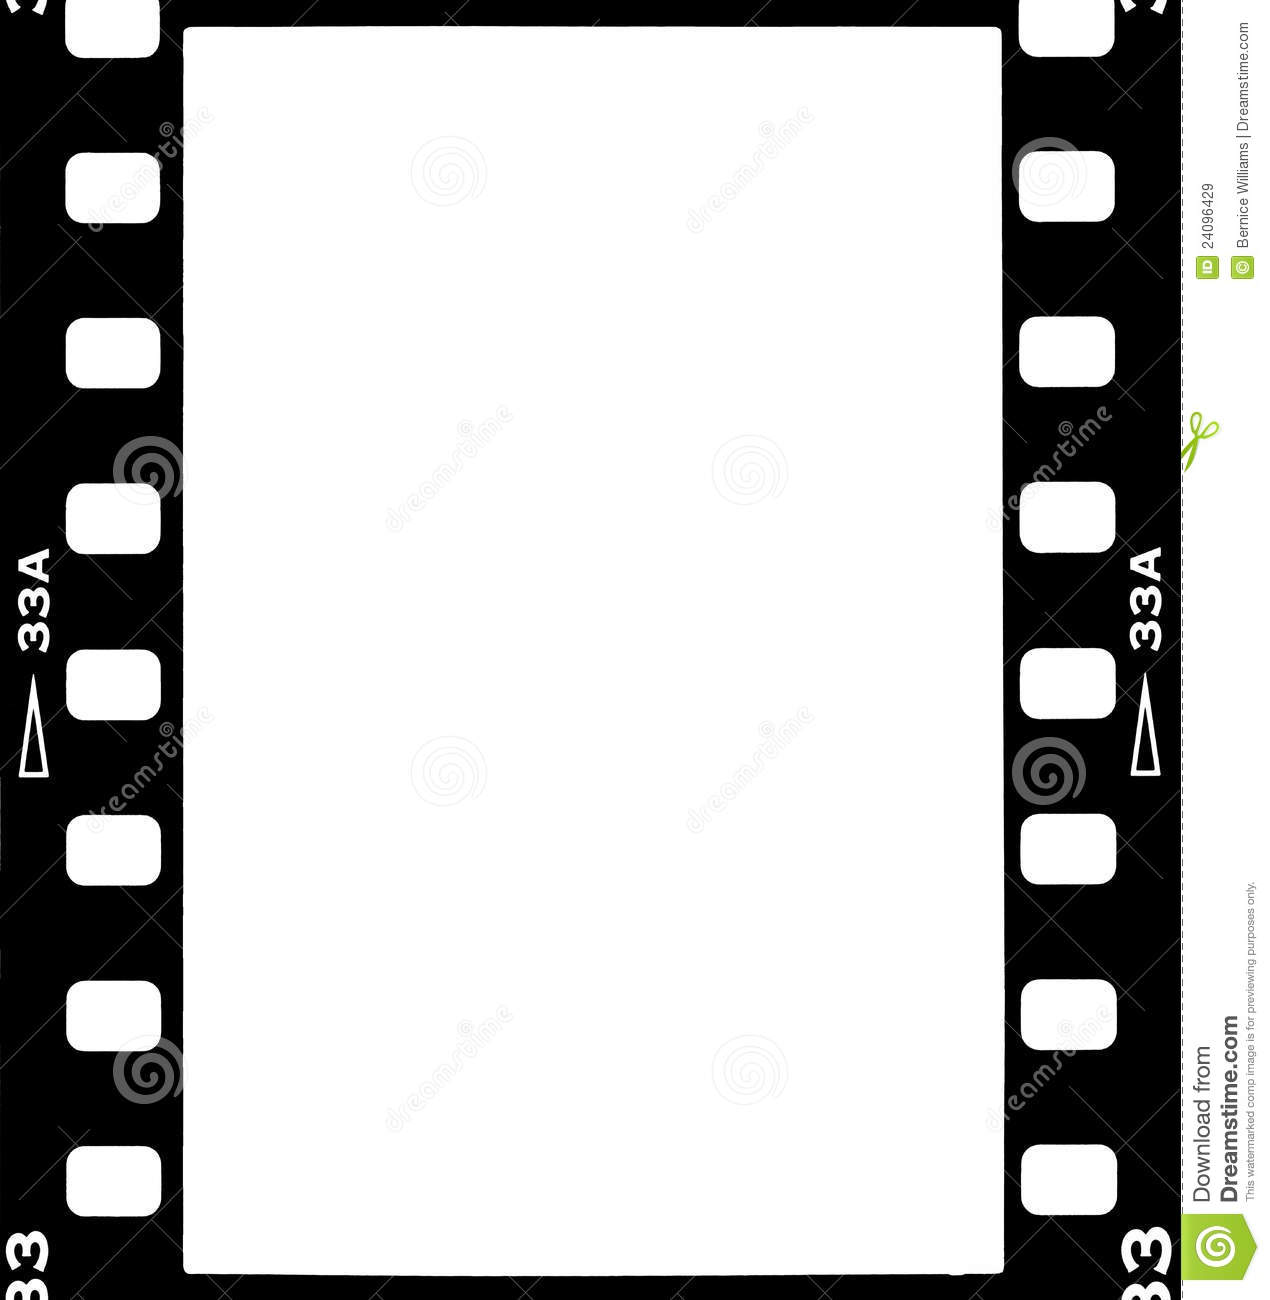 scan of 35mm film frame with copy space or layer over another image